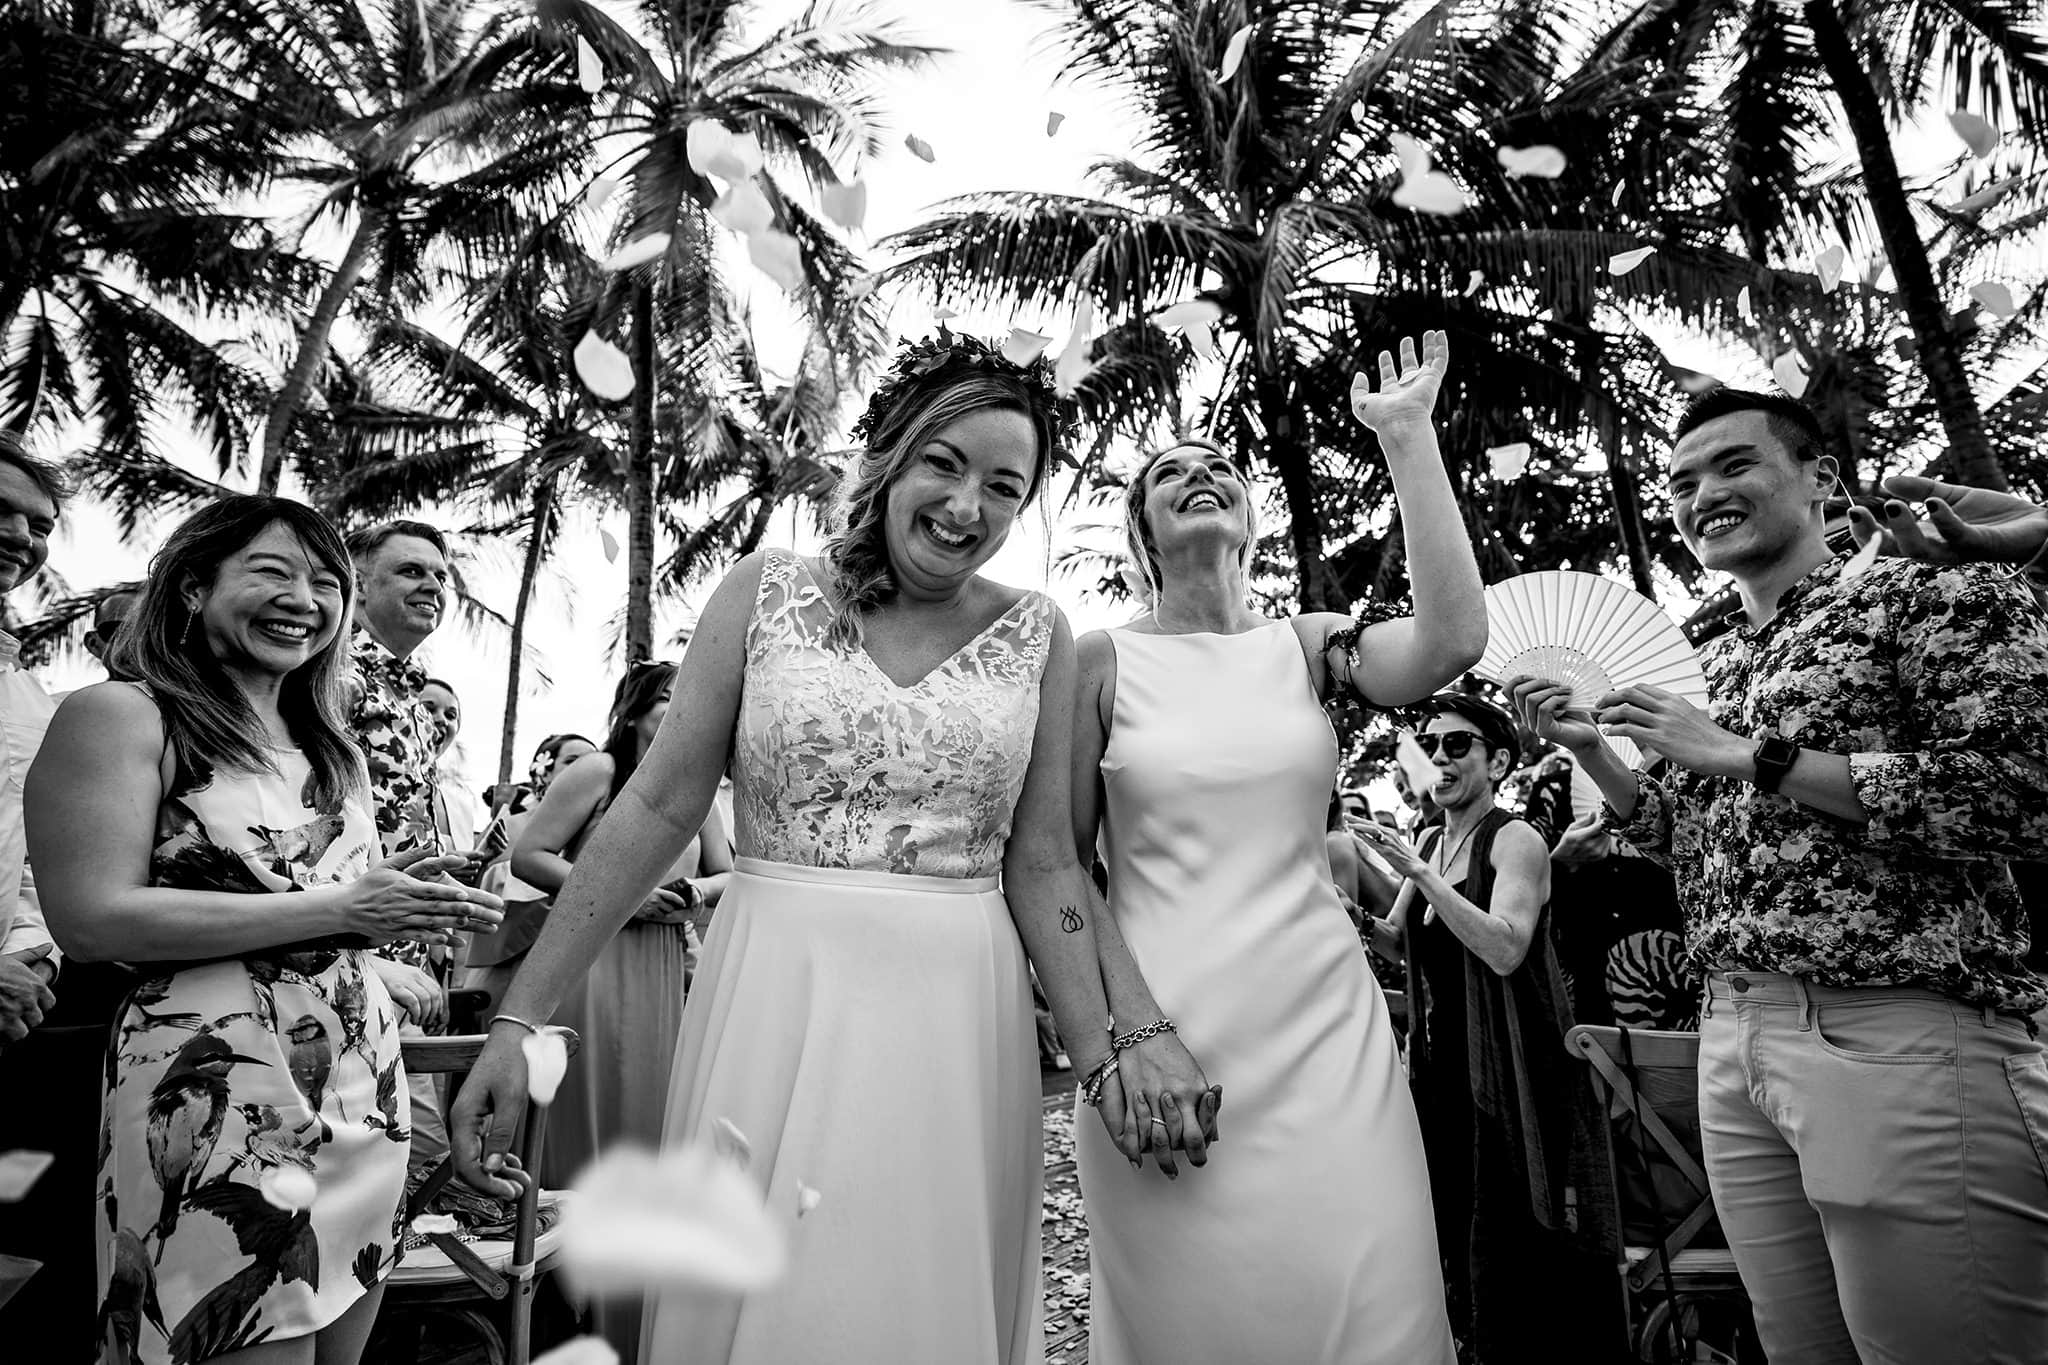 Two brides walk down aisle together